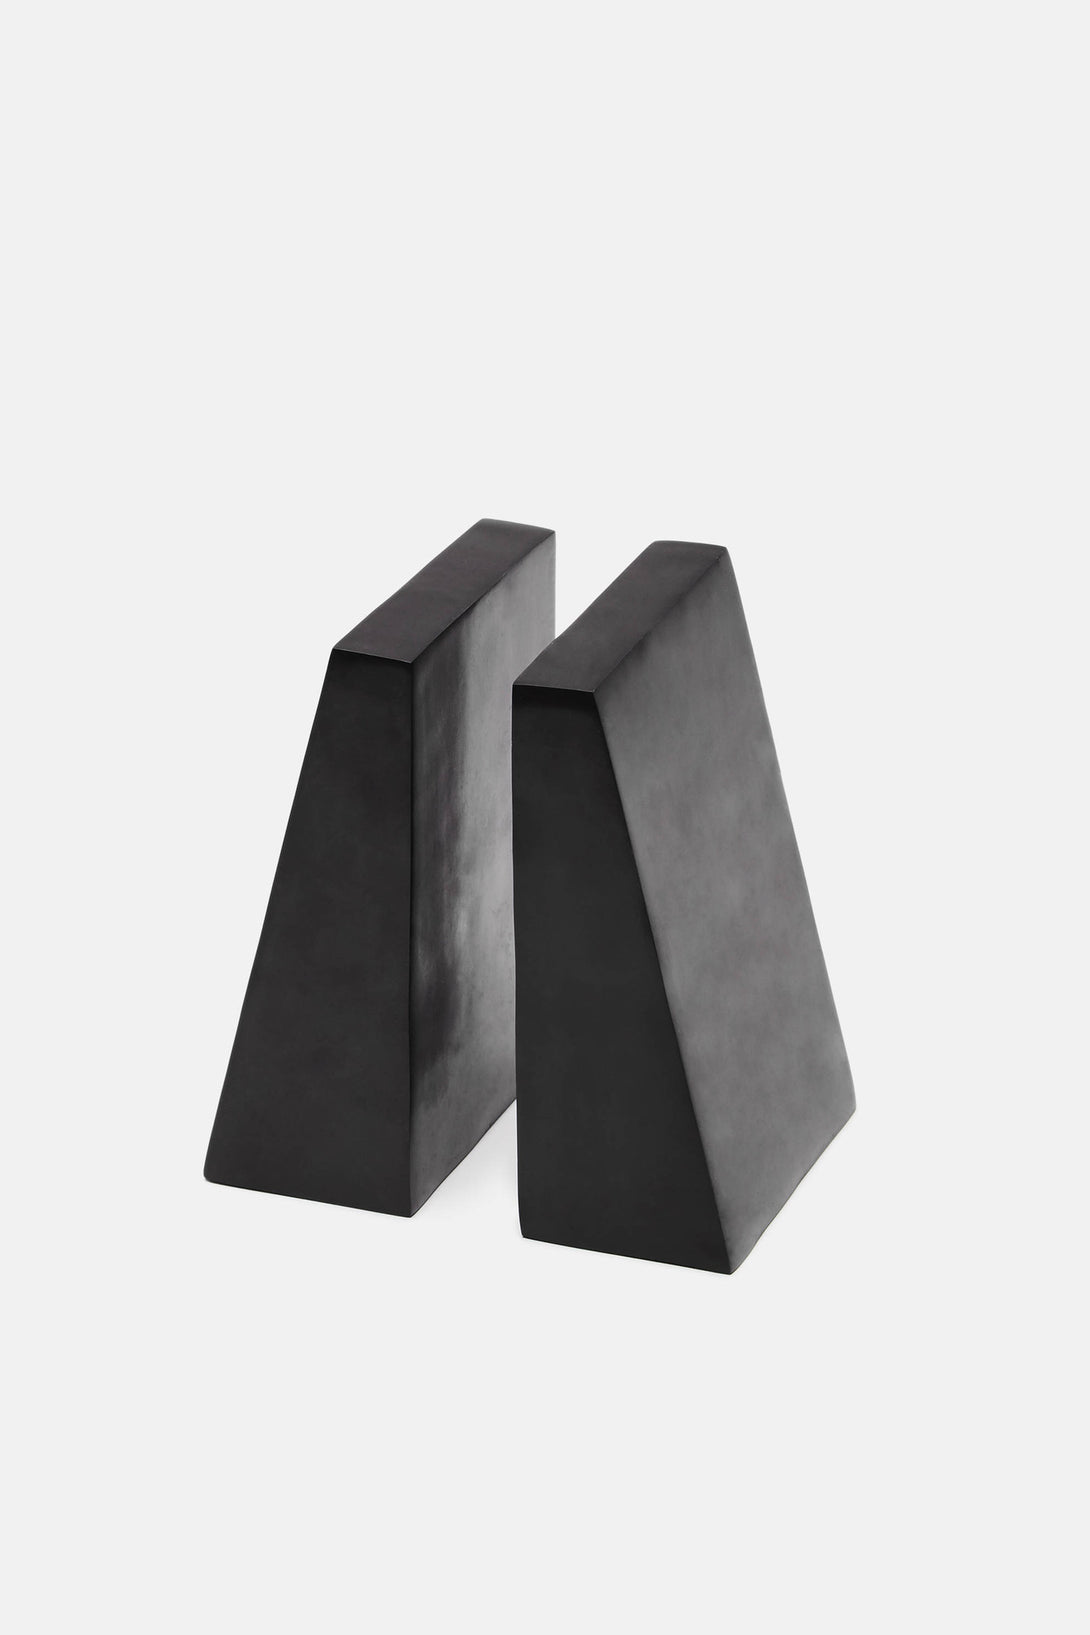 Soapstone Bookend Set - Black